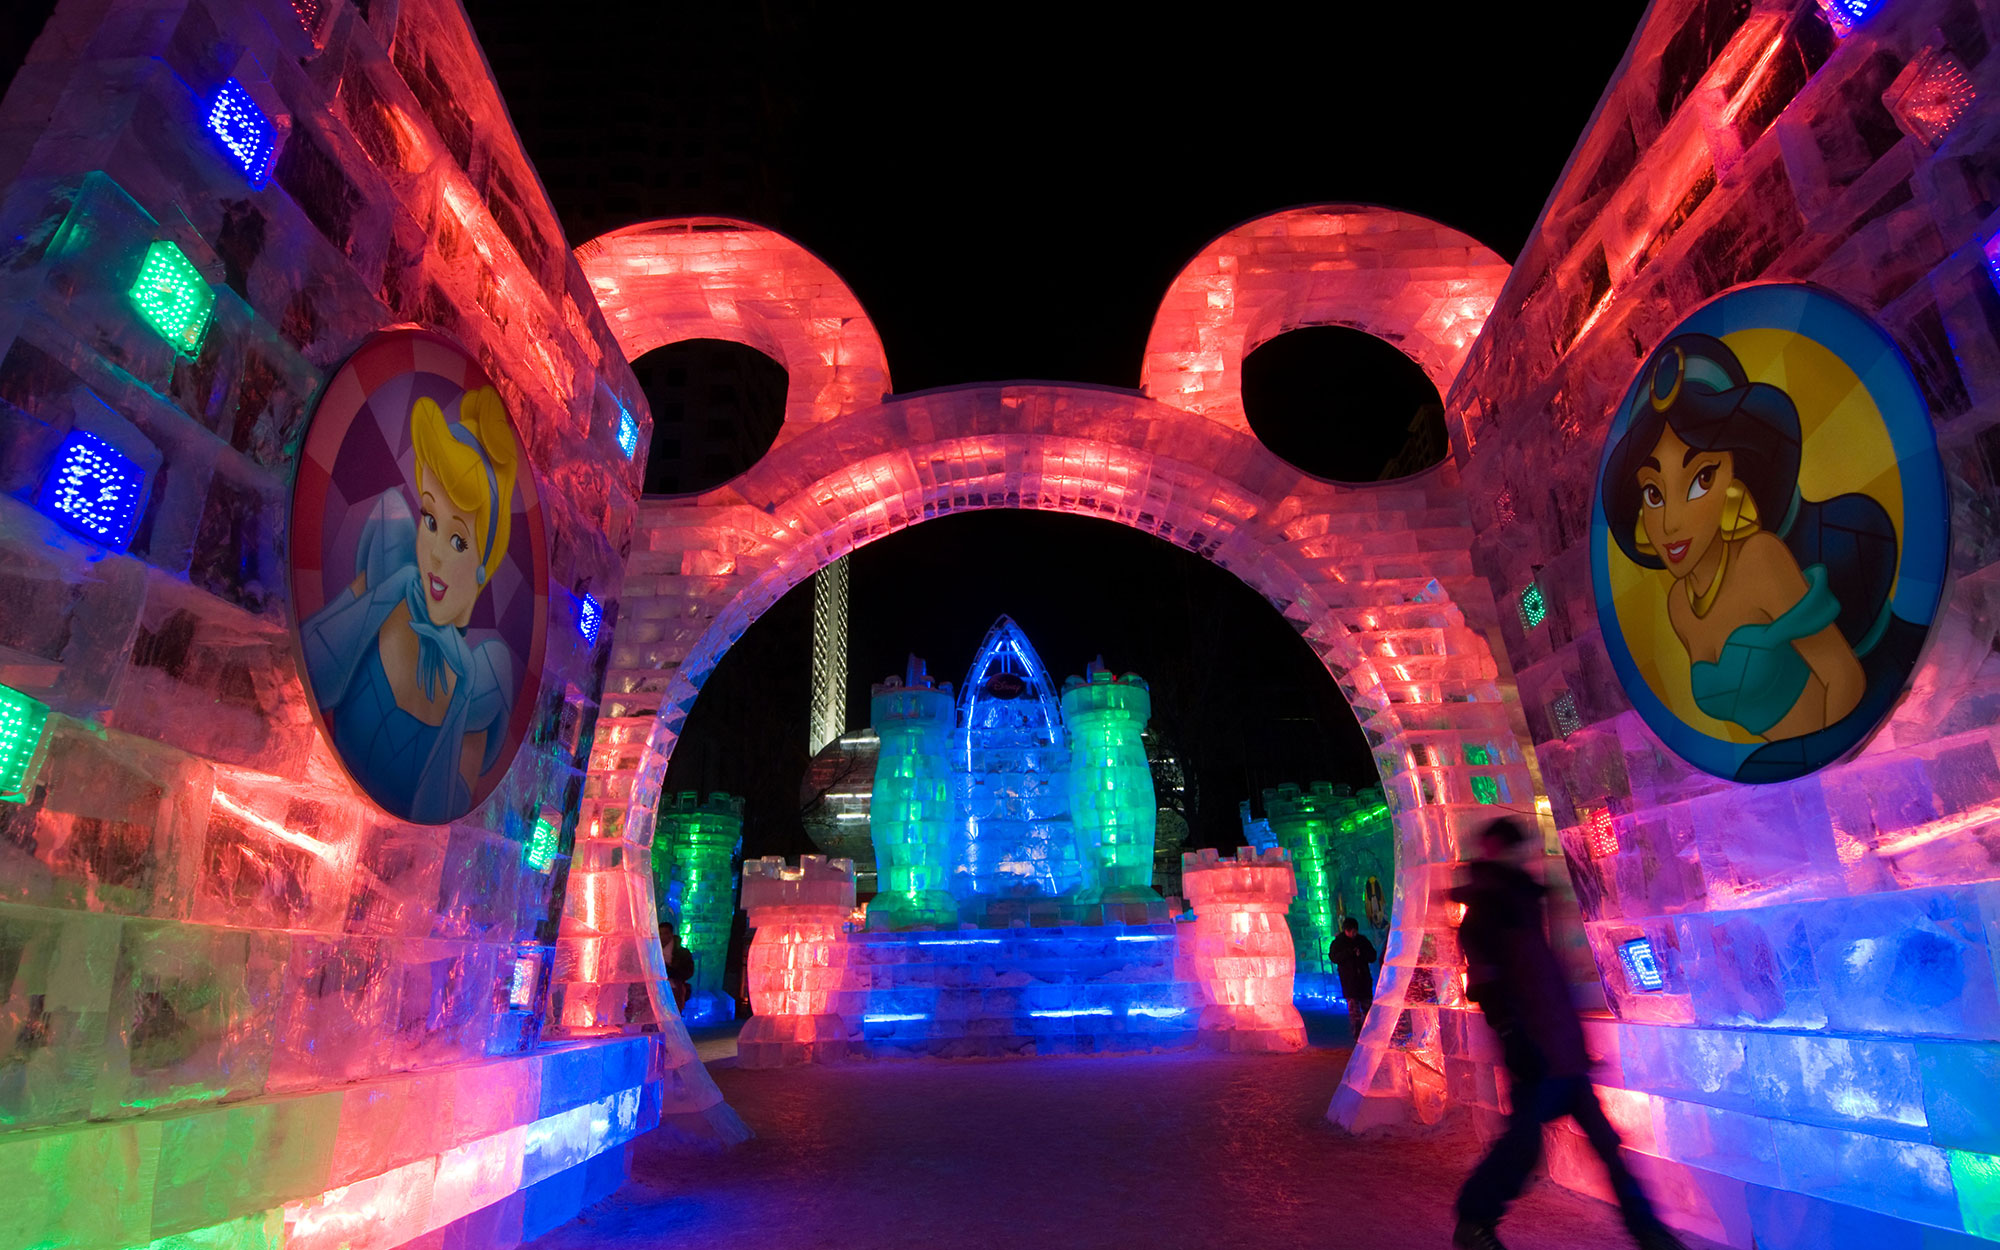 B93PBN Entrance in the shape of Mickey Mouse at the Ice Sculpture Festival sponsored by Disney at Harbin, China 2009